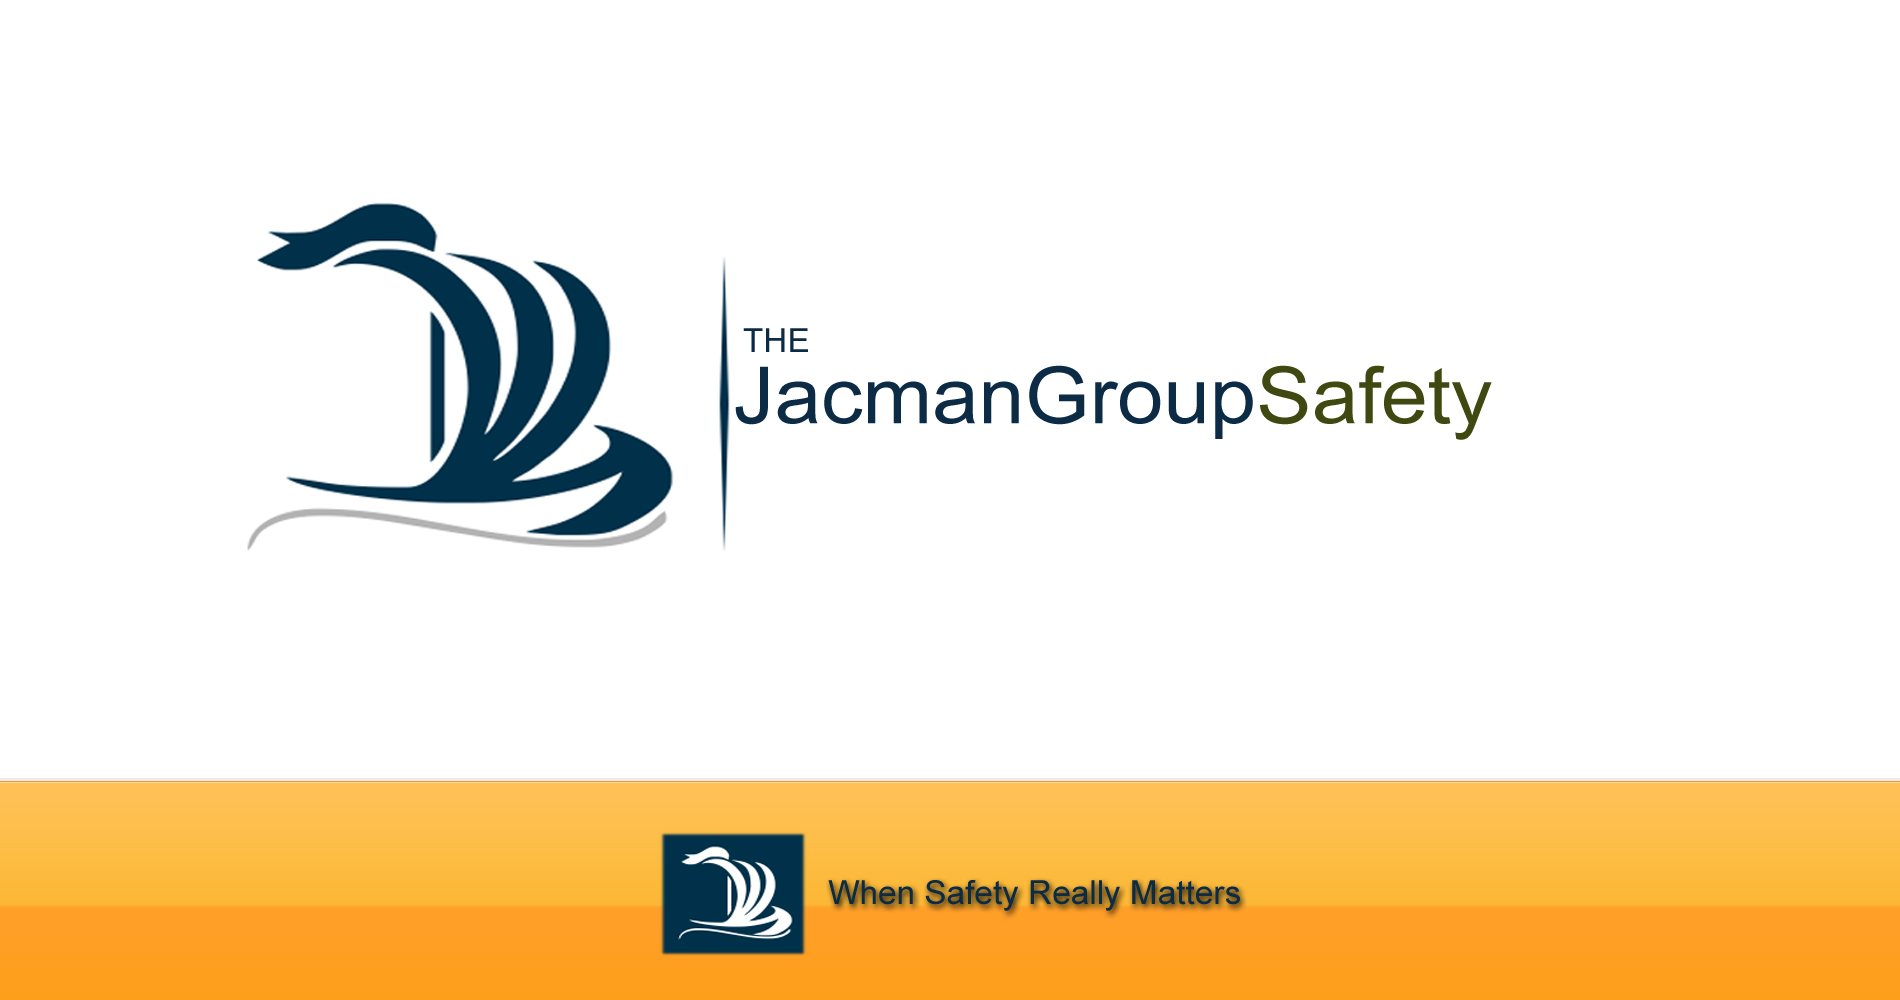 Logo Design by DOUMA AMINE - Entry No. 30 in the Logo Design Contest The Jacman Group Logo Design.